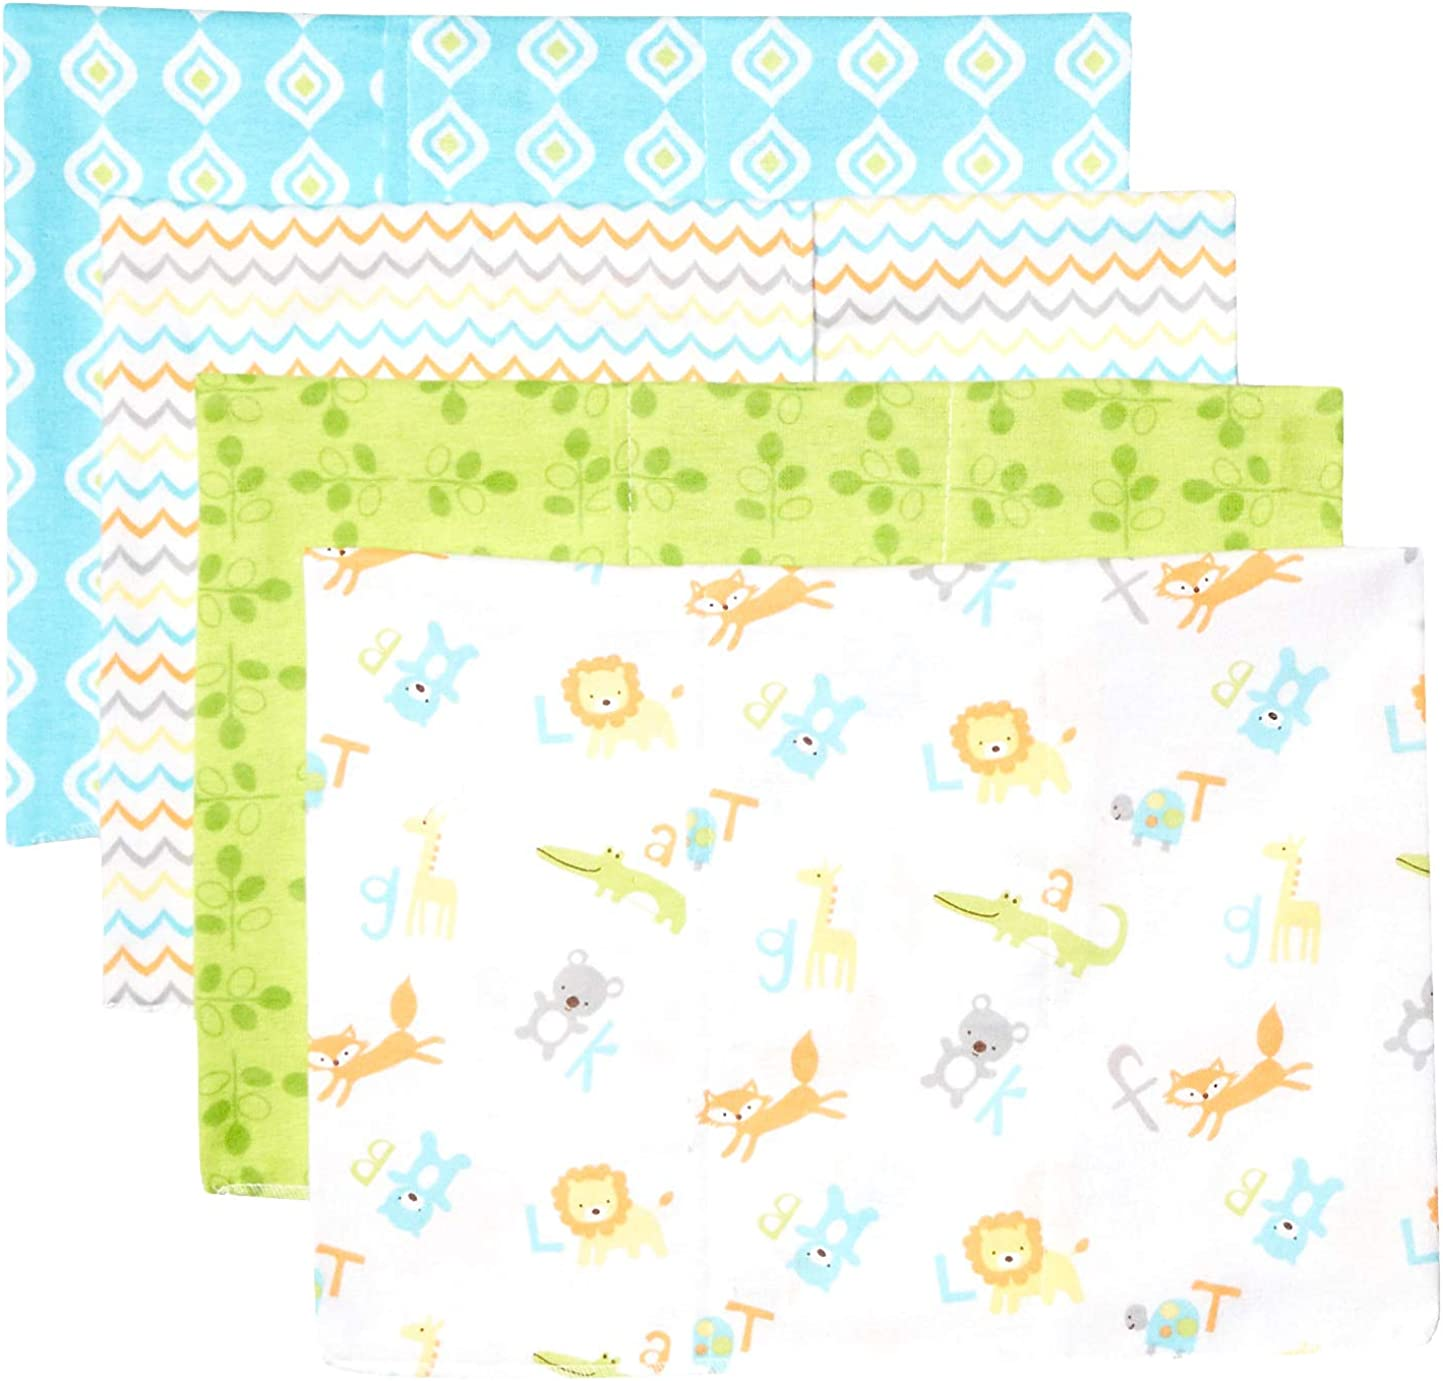 """Burp Cloths Unisex 3 Pack of Burp Cloths Large 20/"""" by 10/"""" Baby Burp Rags Under The Sea Rabbit and Roo Baby Burp Cloths for Boys and Girls Super Soft 100/% Cotton Cloth Ideal Baby Gift"""